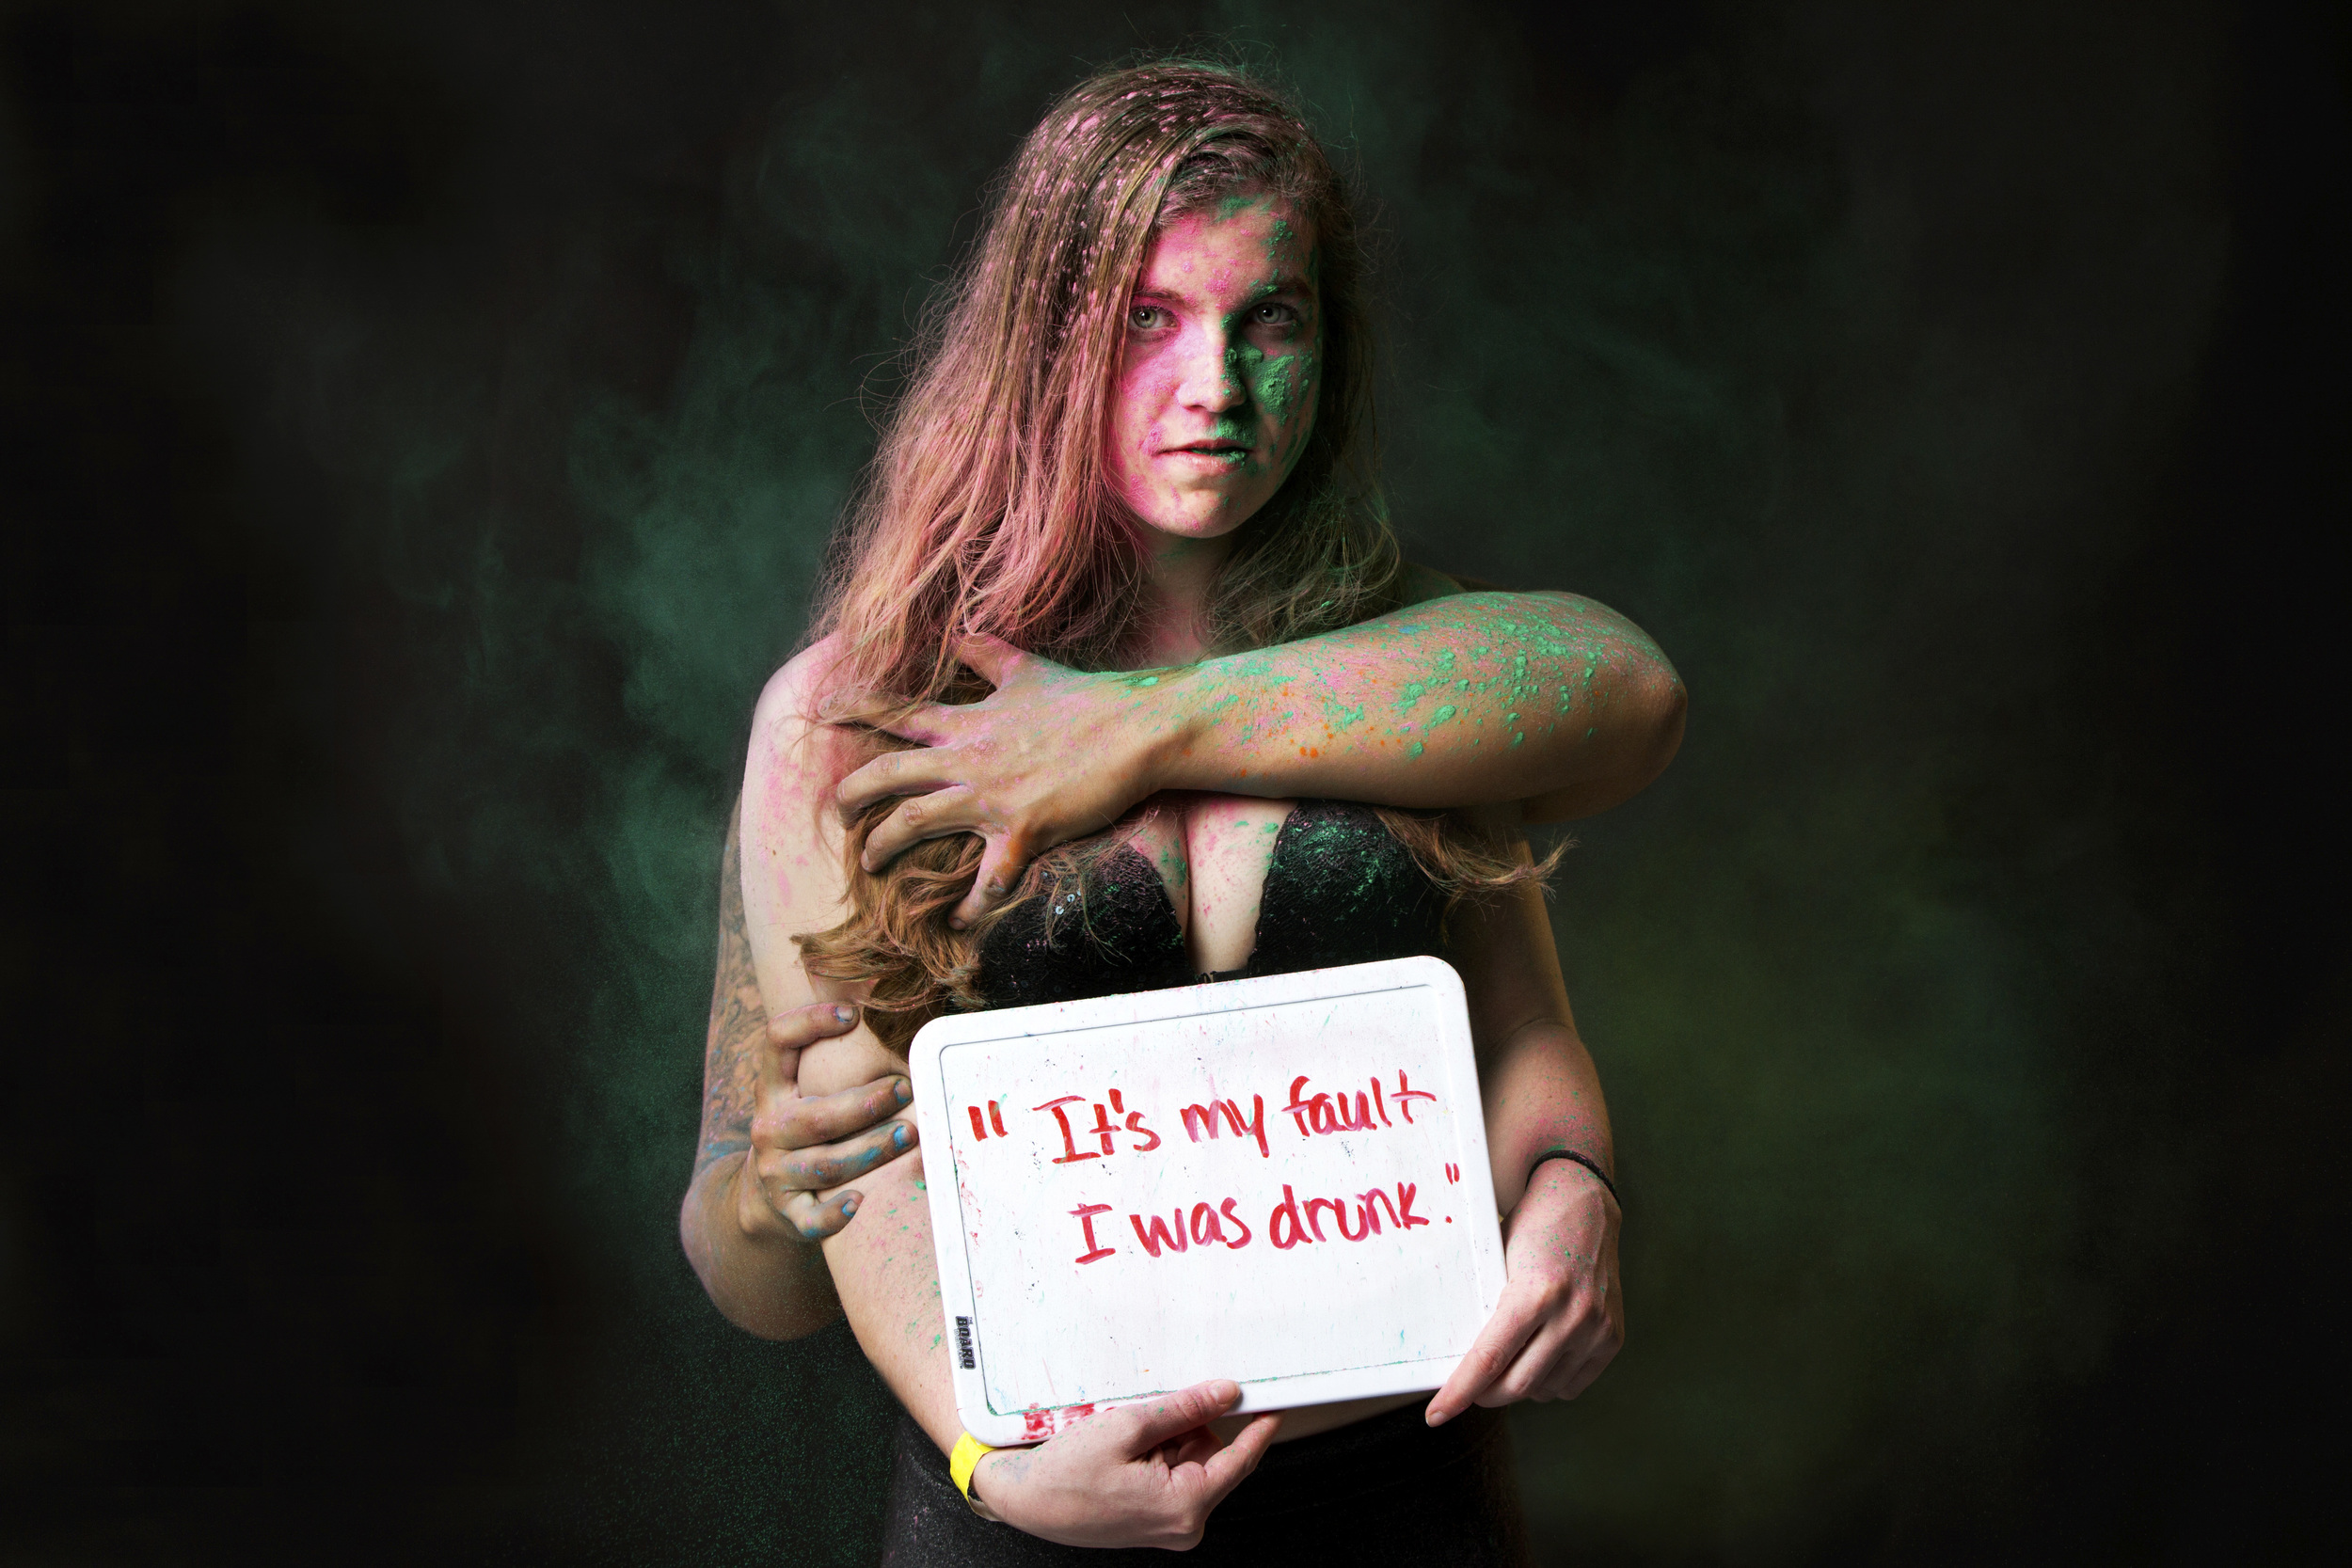 Photographer Yana Mazurkevich Gives a Voice to Rape Victims